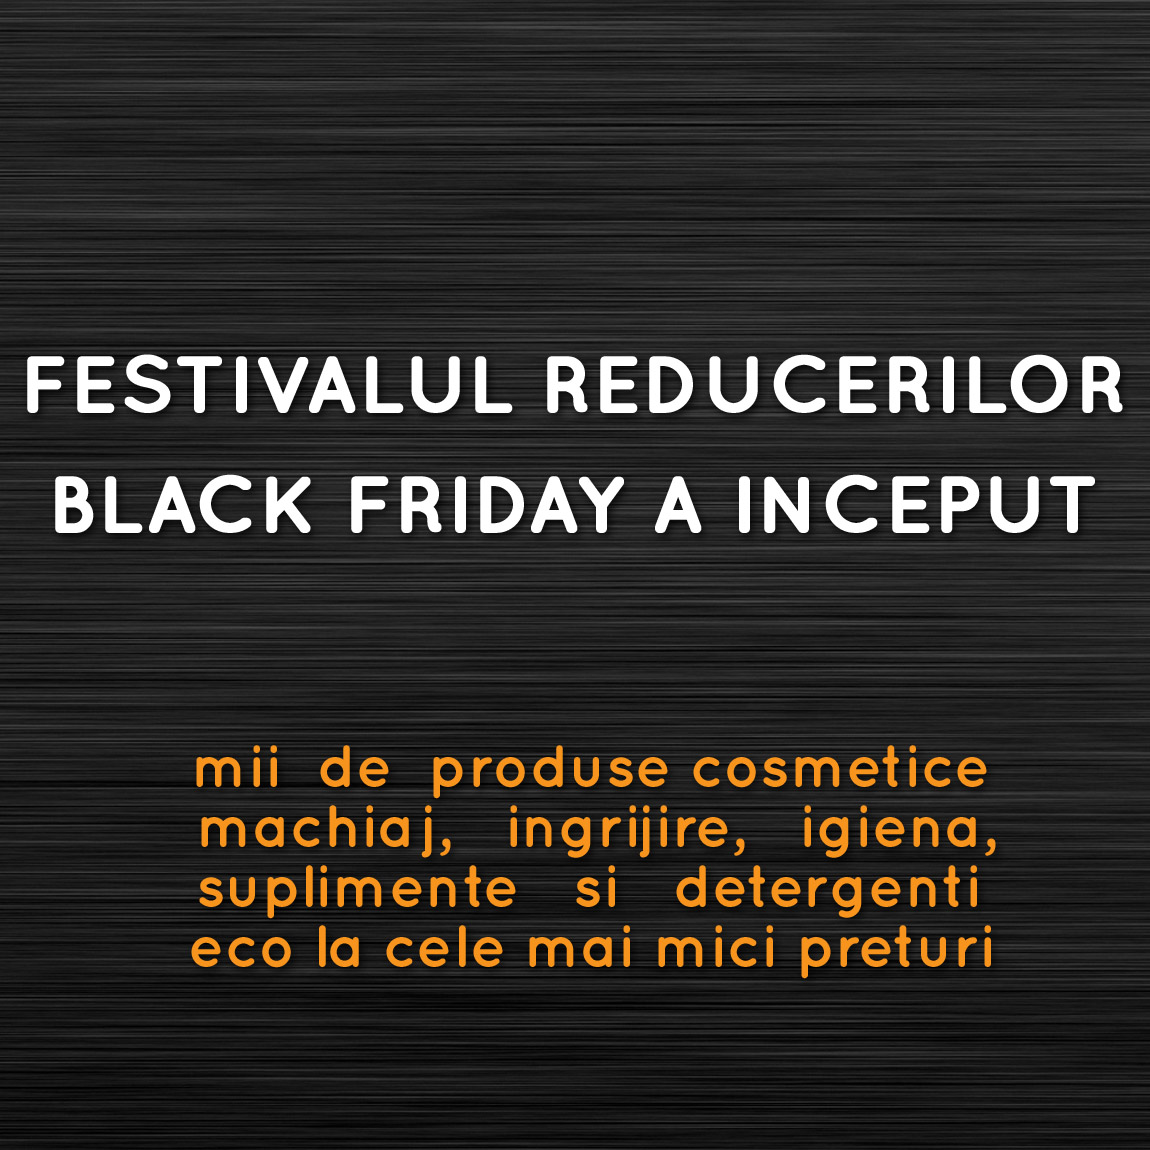 BLACK FRIDAY ORGANIK